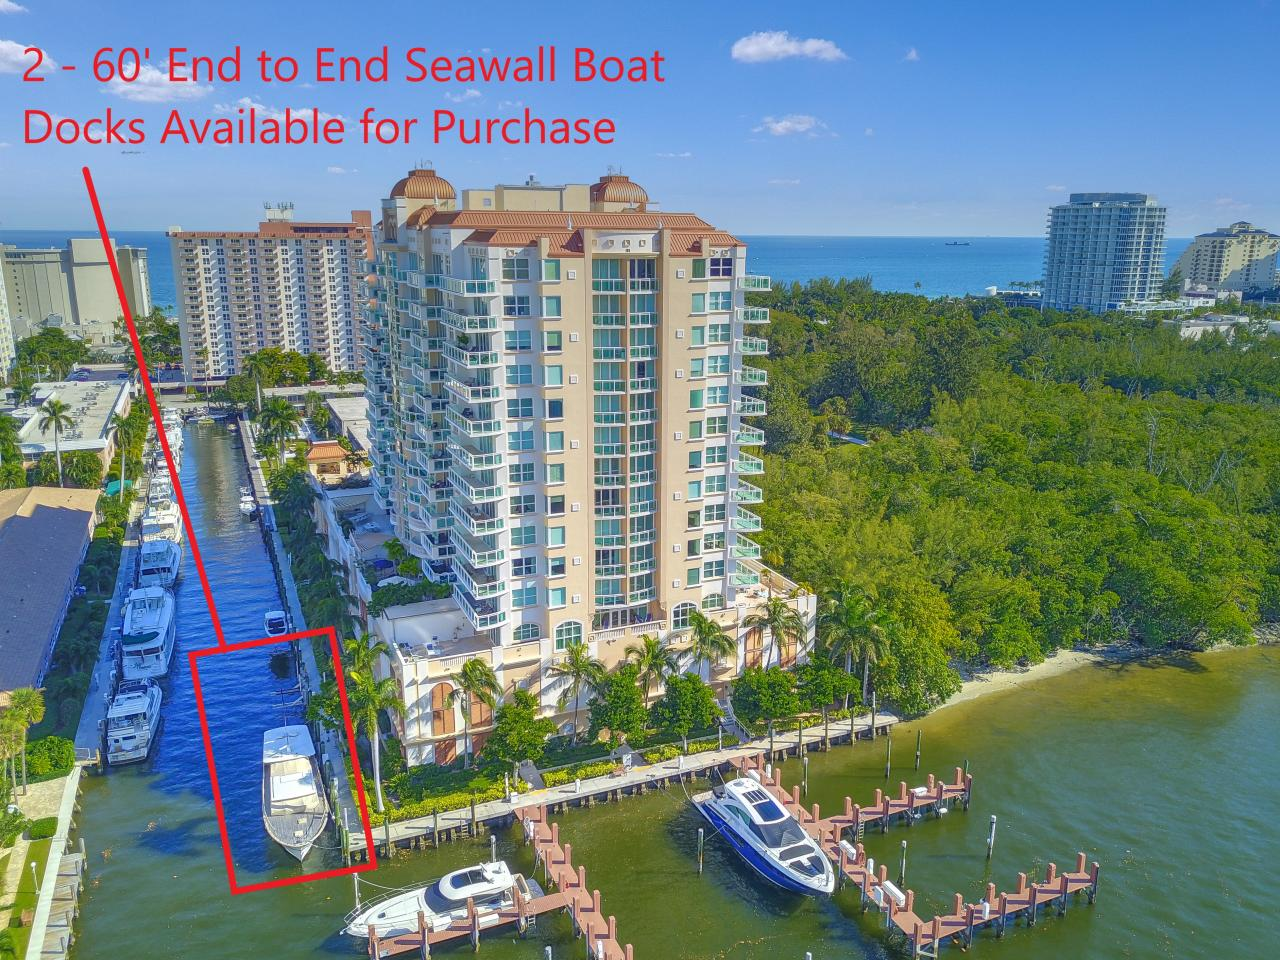 Aerial View with Seawall Boat Docks Available for Purchase